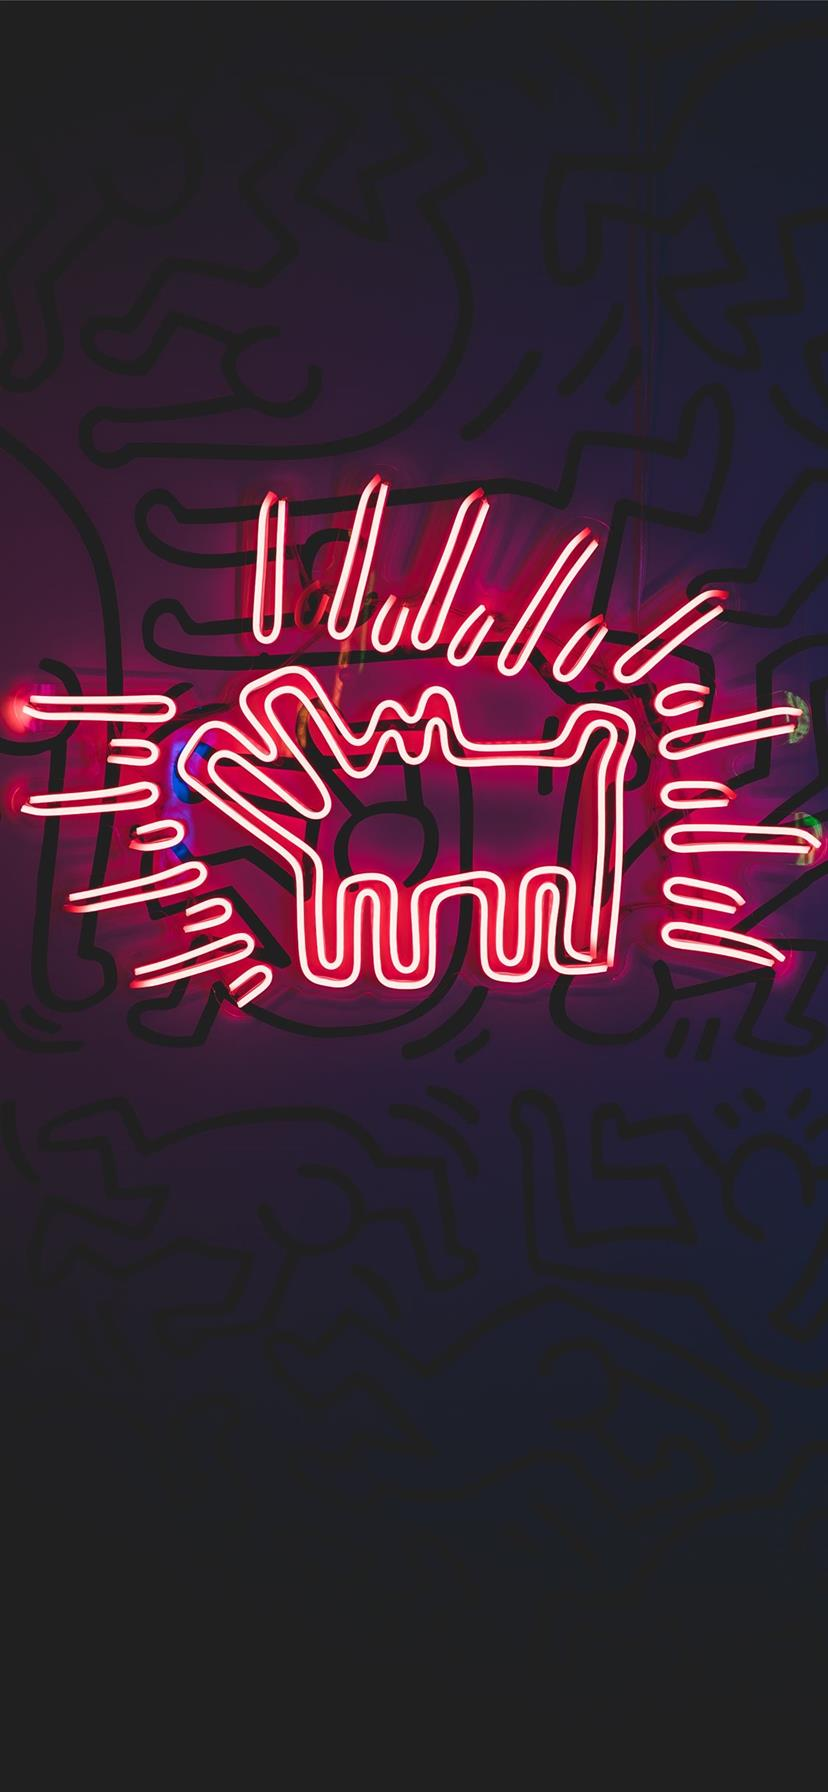 Black And Red Budweiser Neon Signage Iphone Wallpapers Free